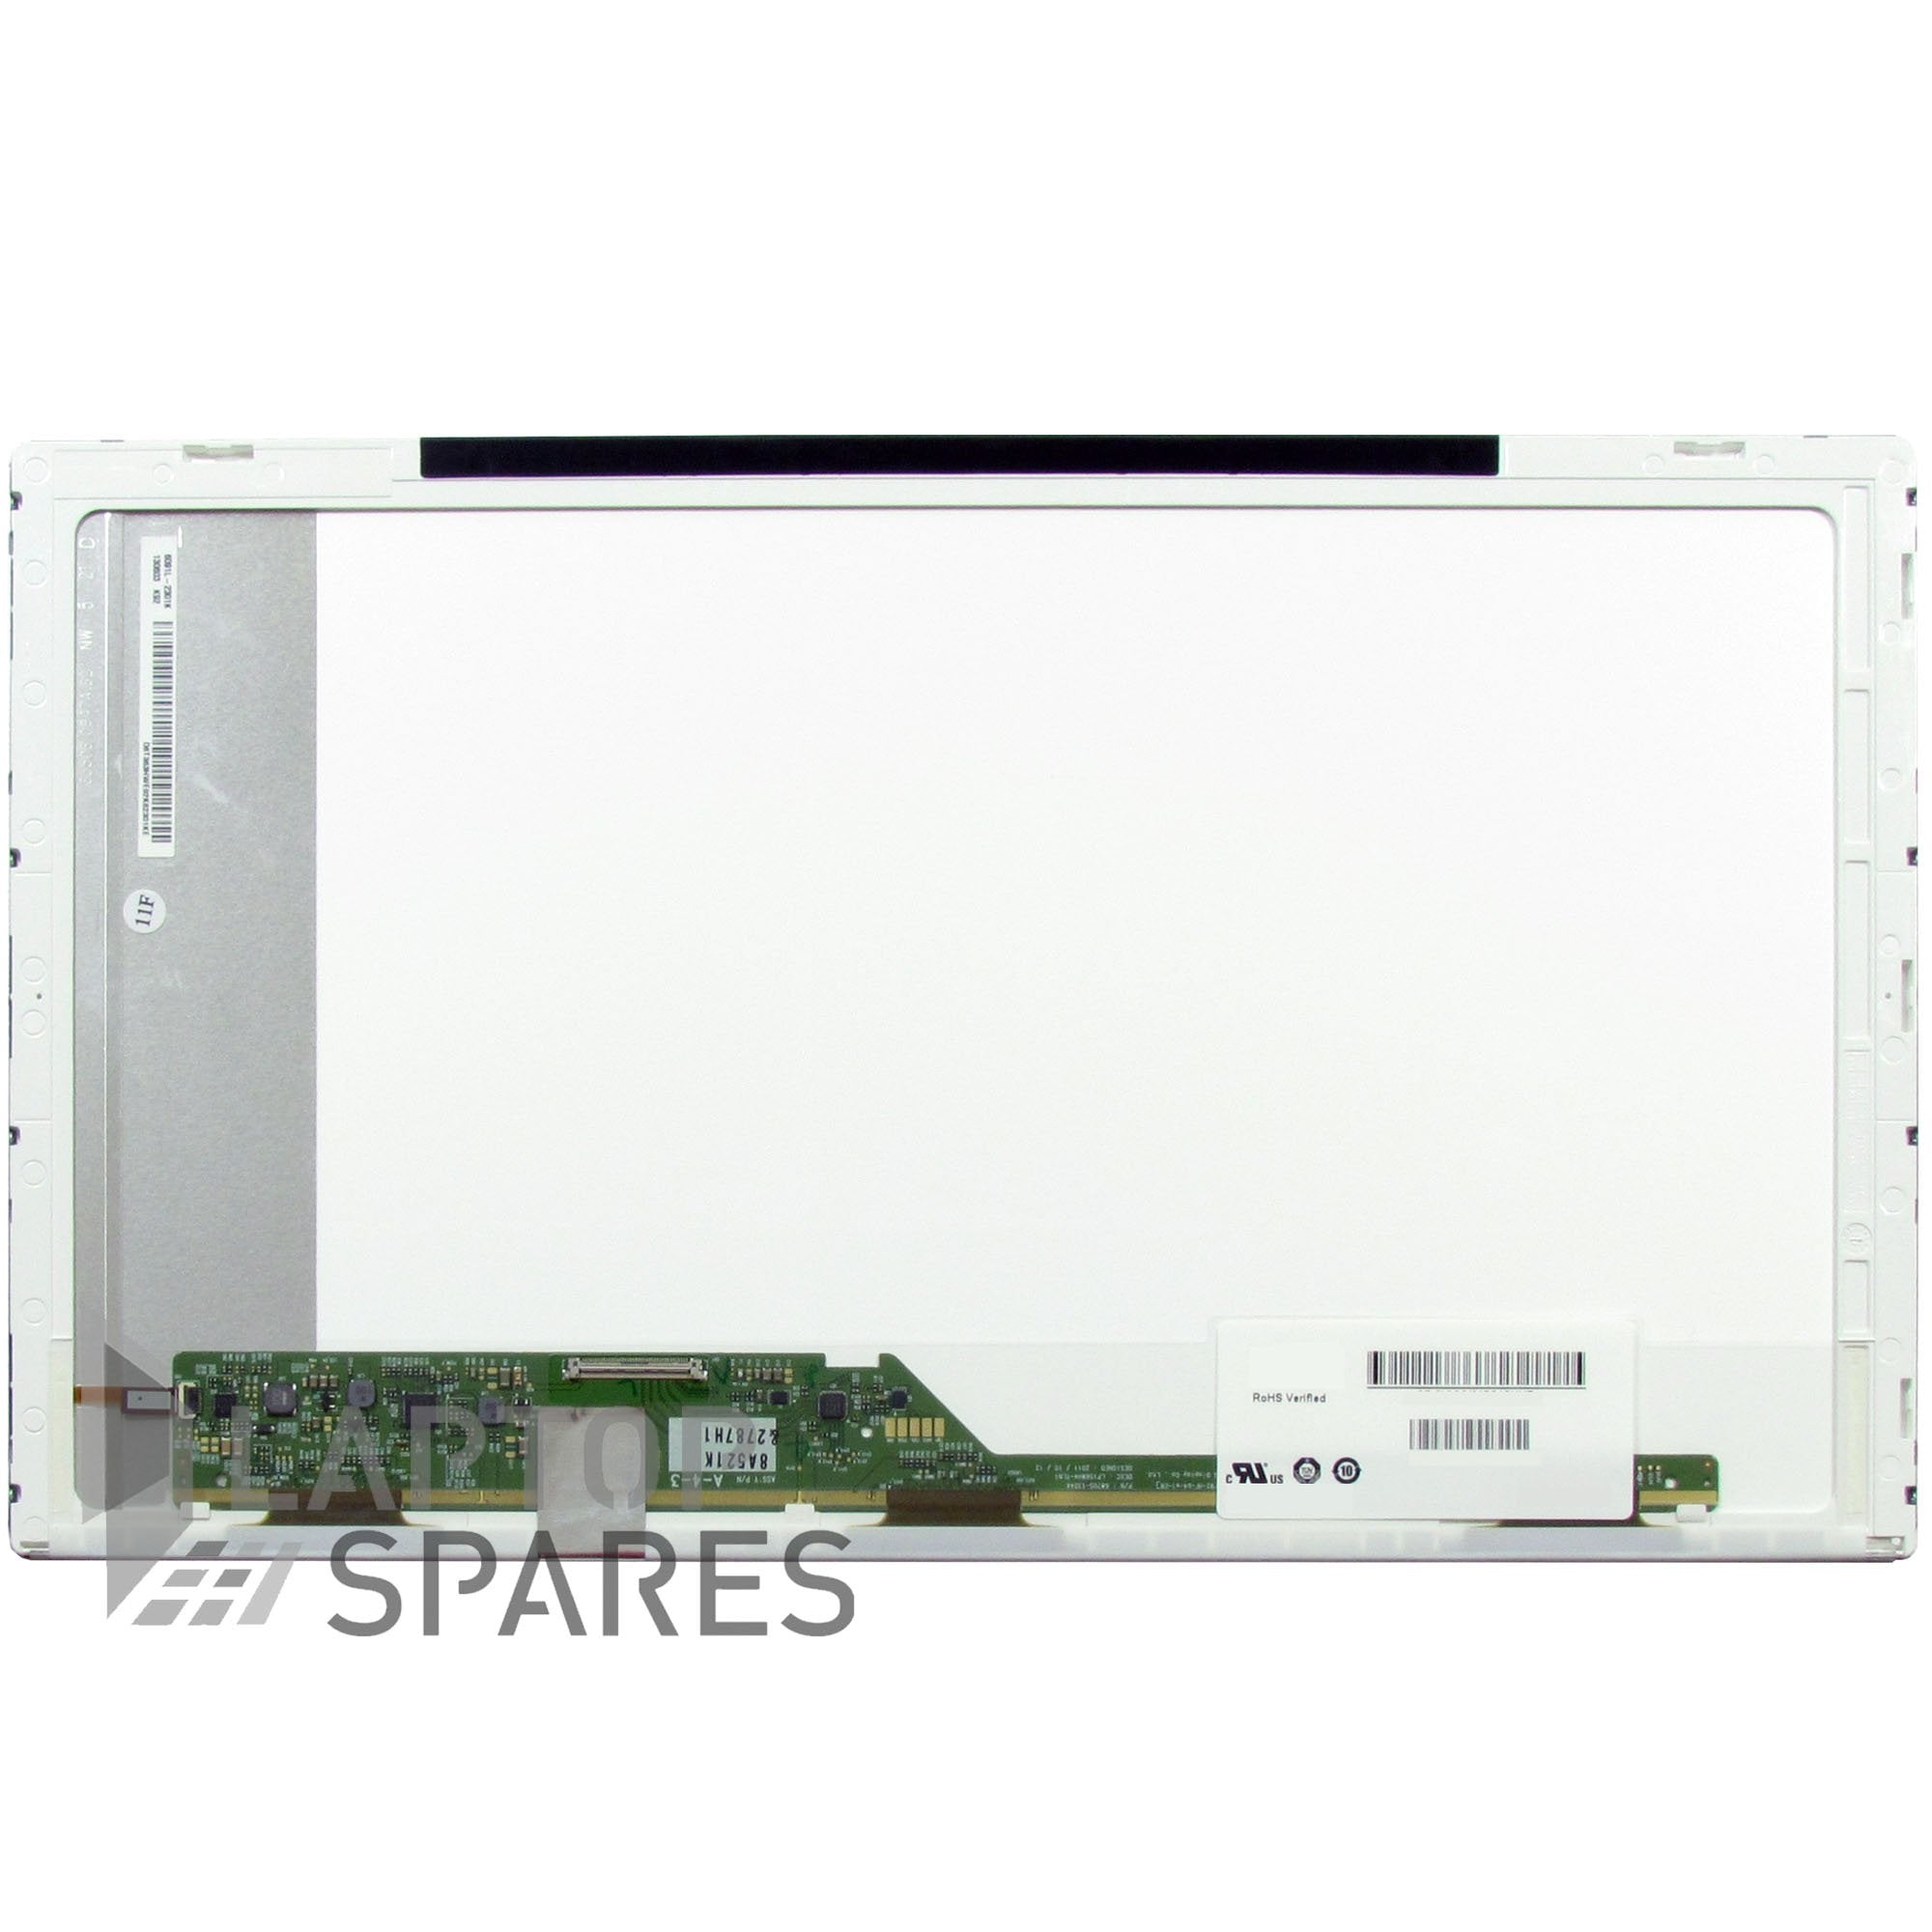 "Acer Aspire 4250-3479 14.0"" Laptop Screen"